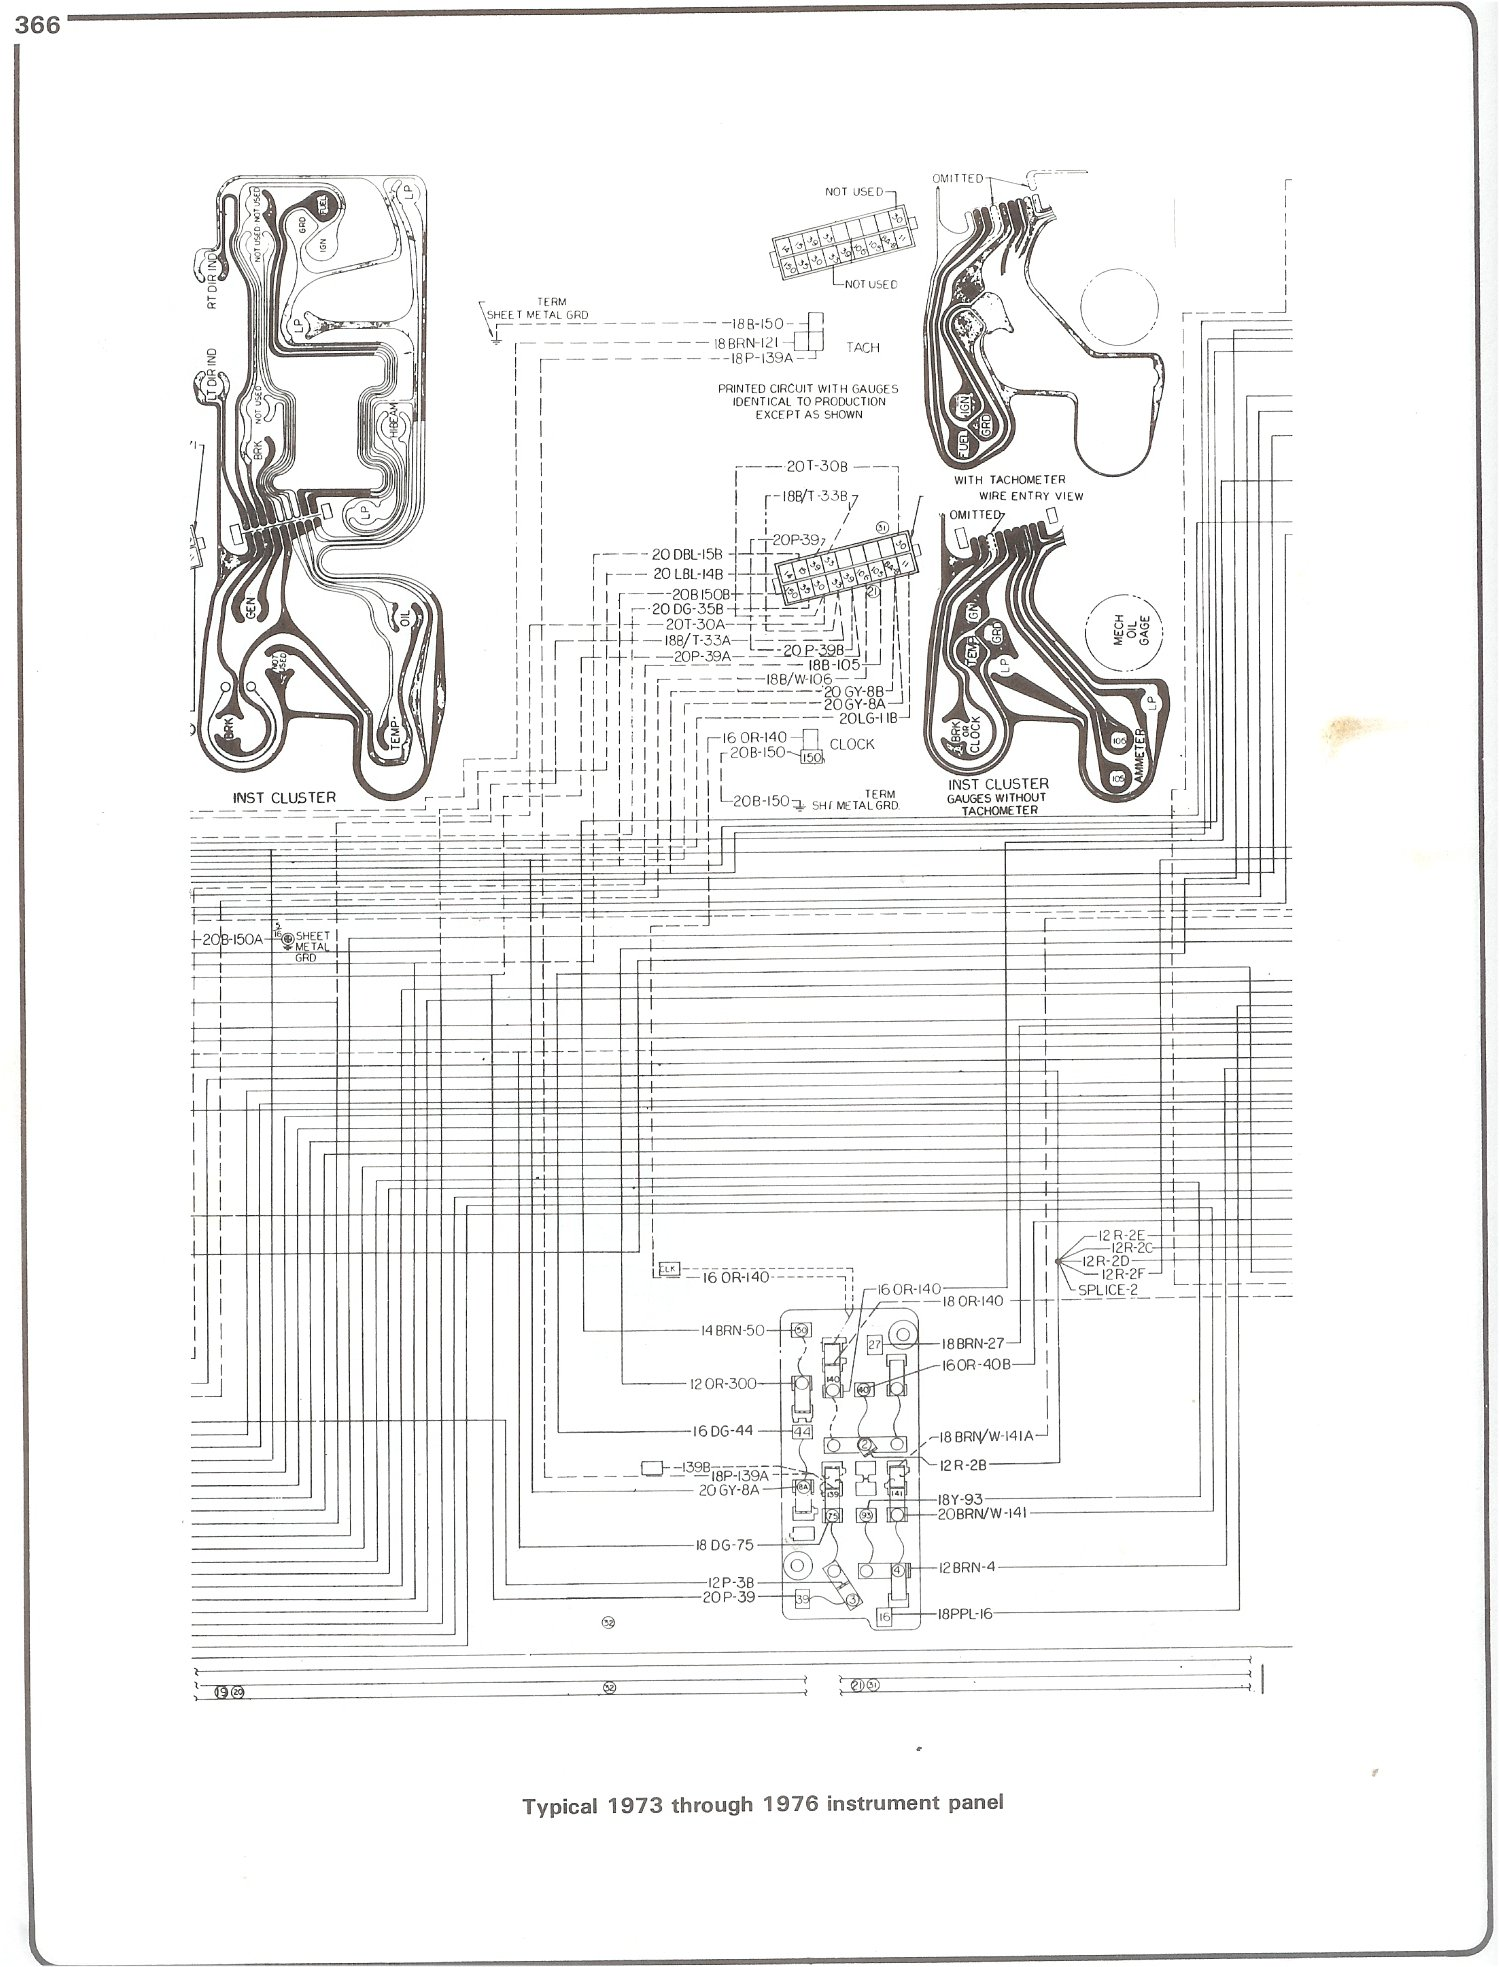 73 76_instrument complete 73 87 wiring diagrams 2000 silverado cluster wiring diagram at gsmportal.co